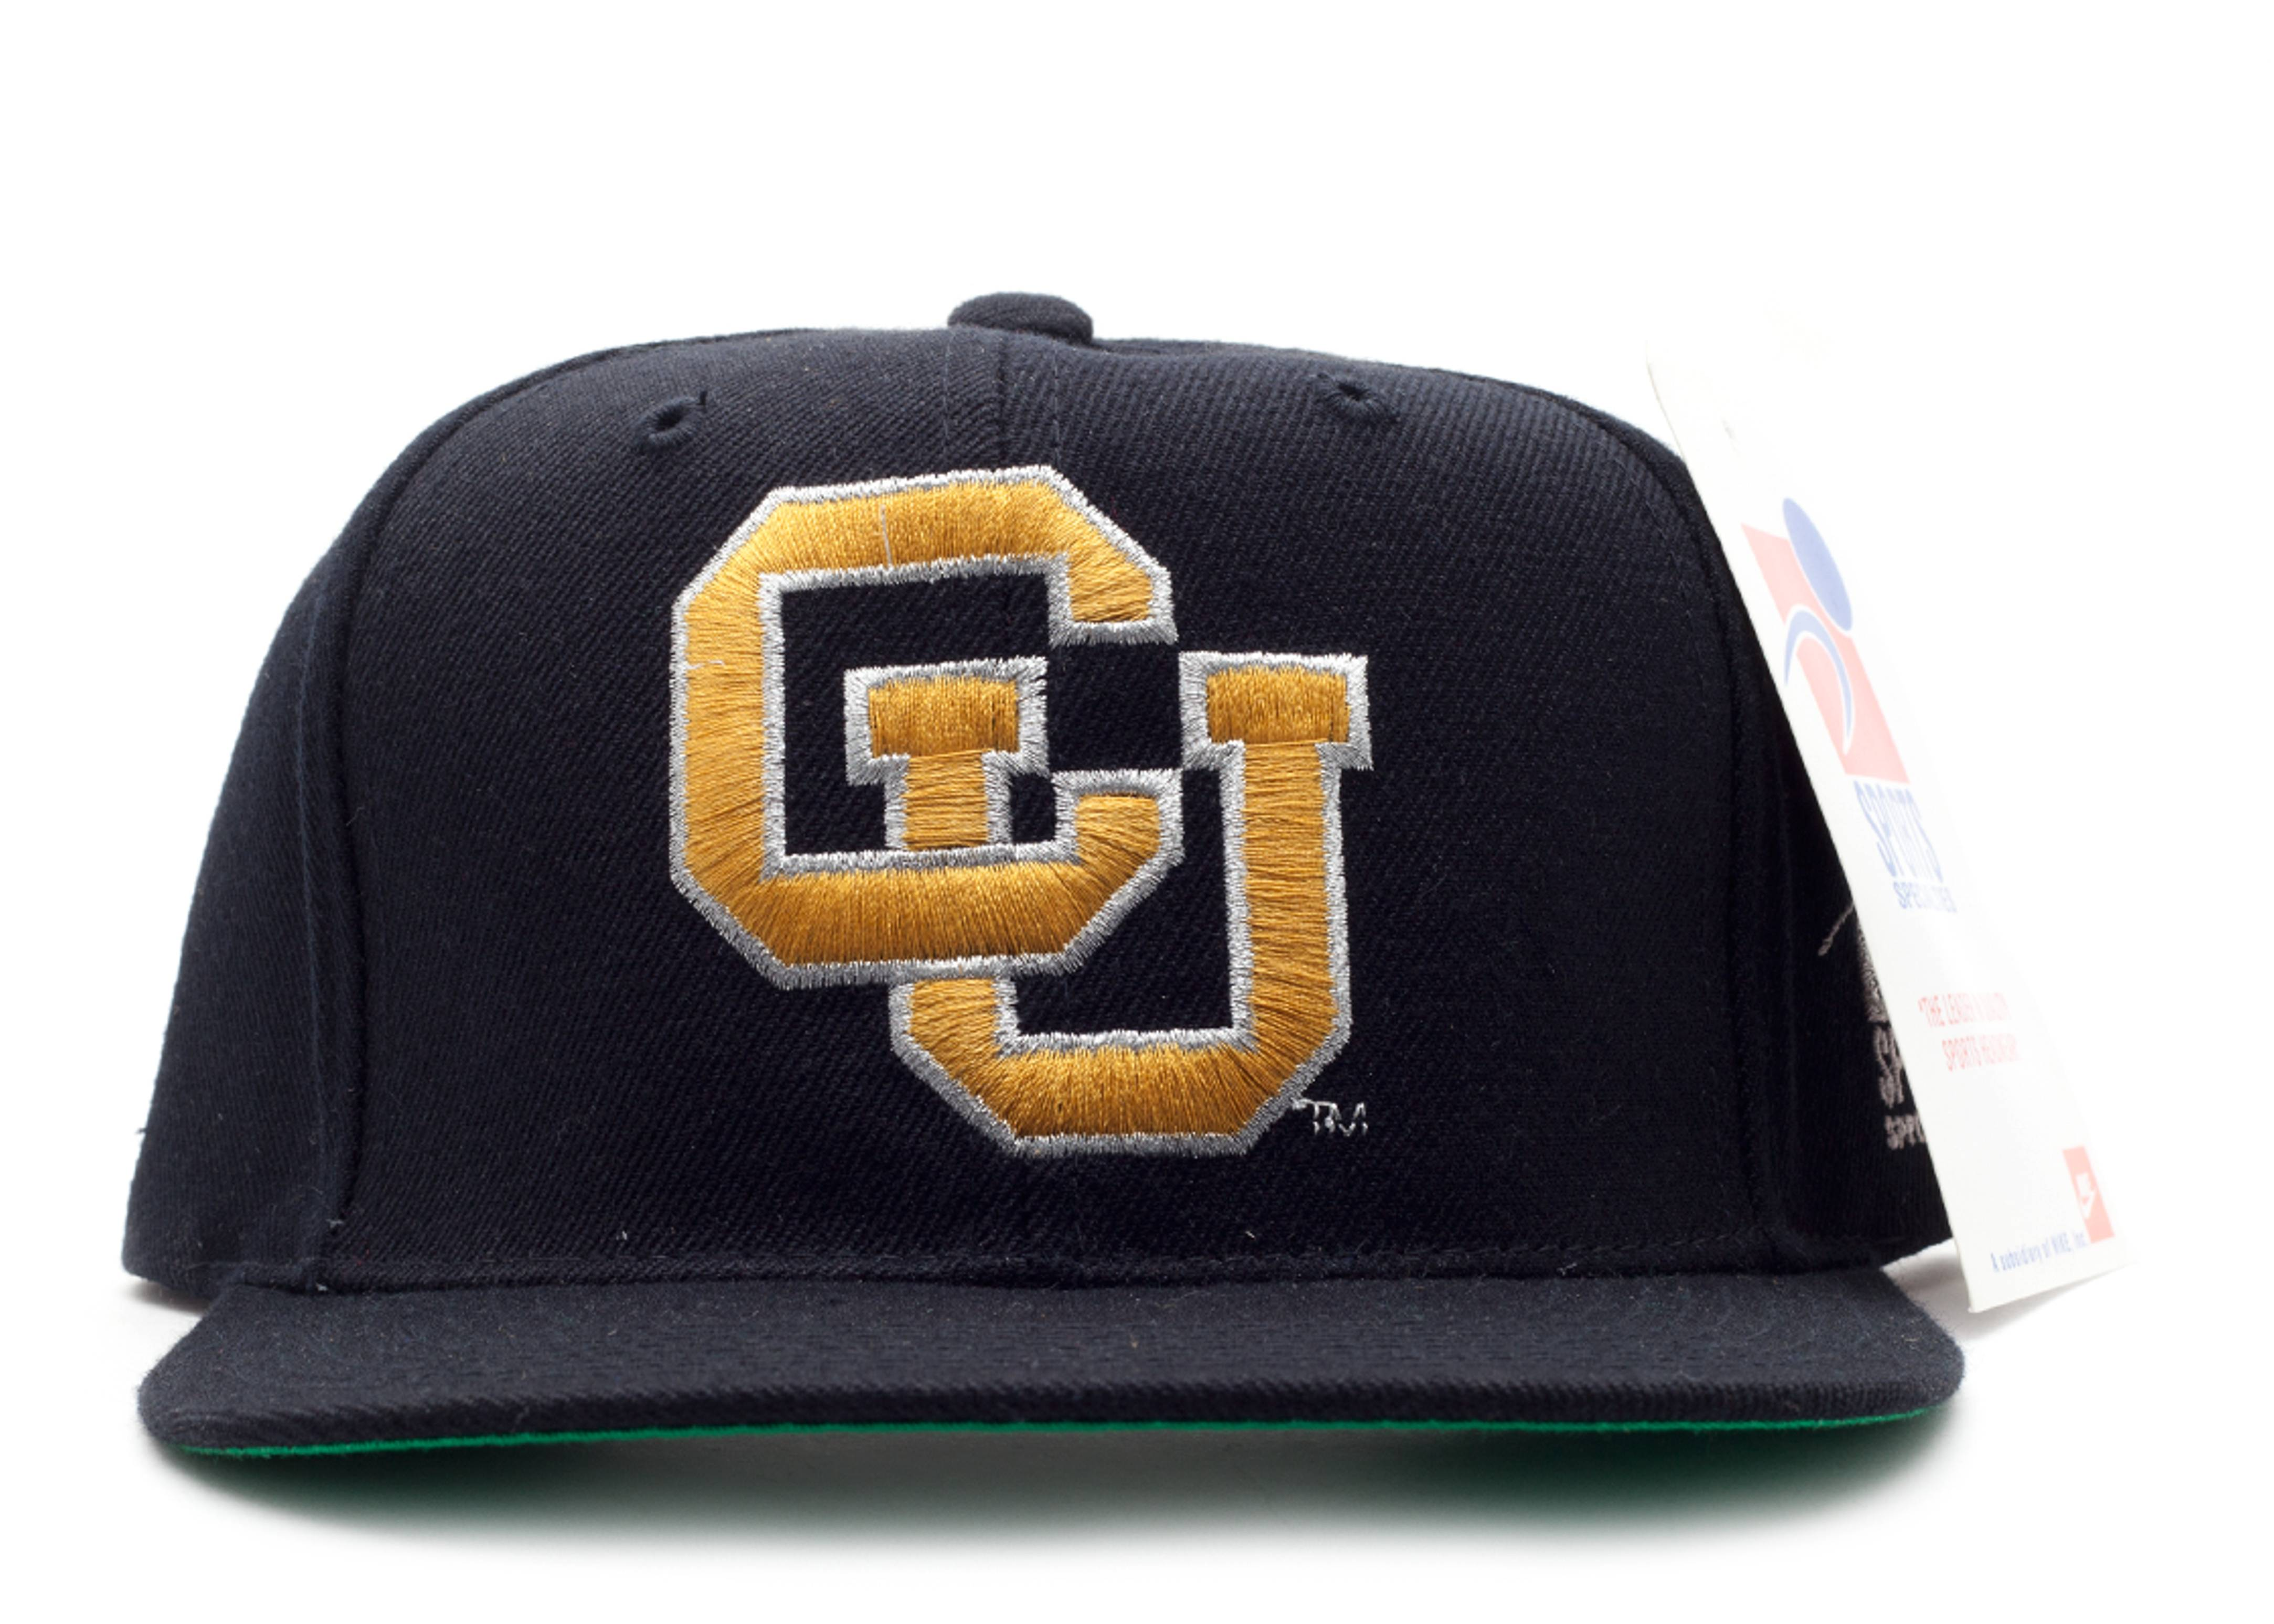 gonzaga university snap-back